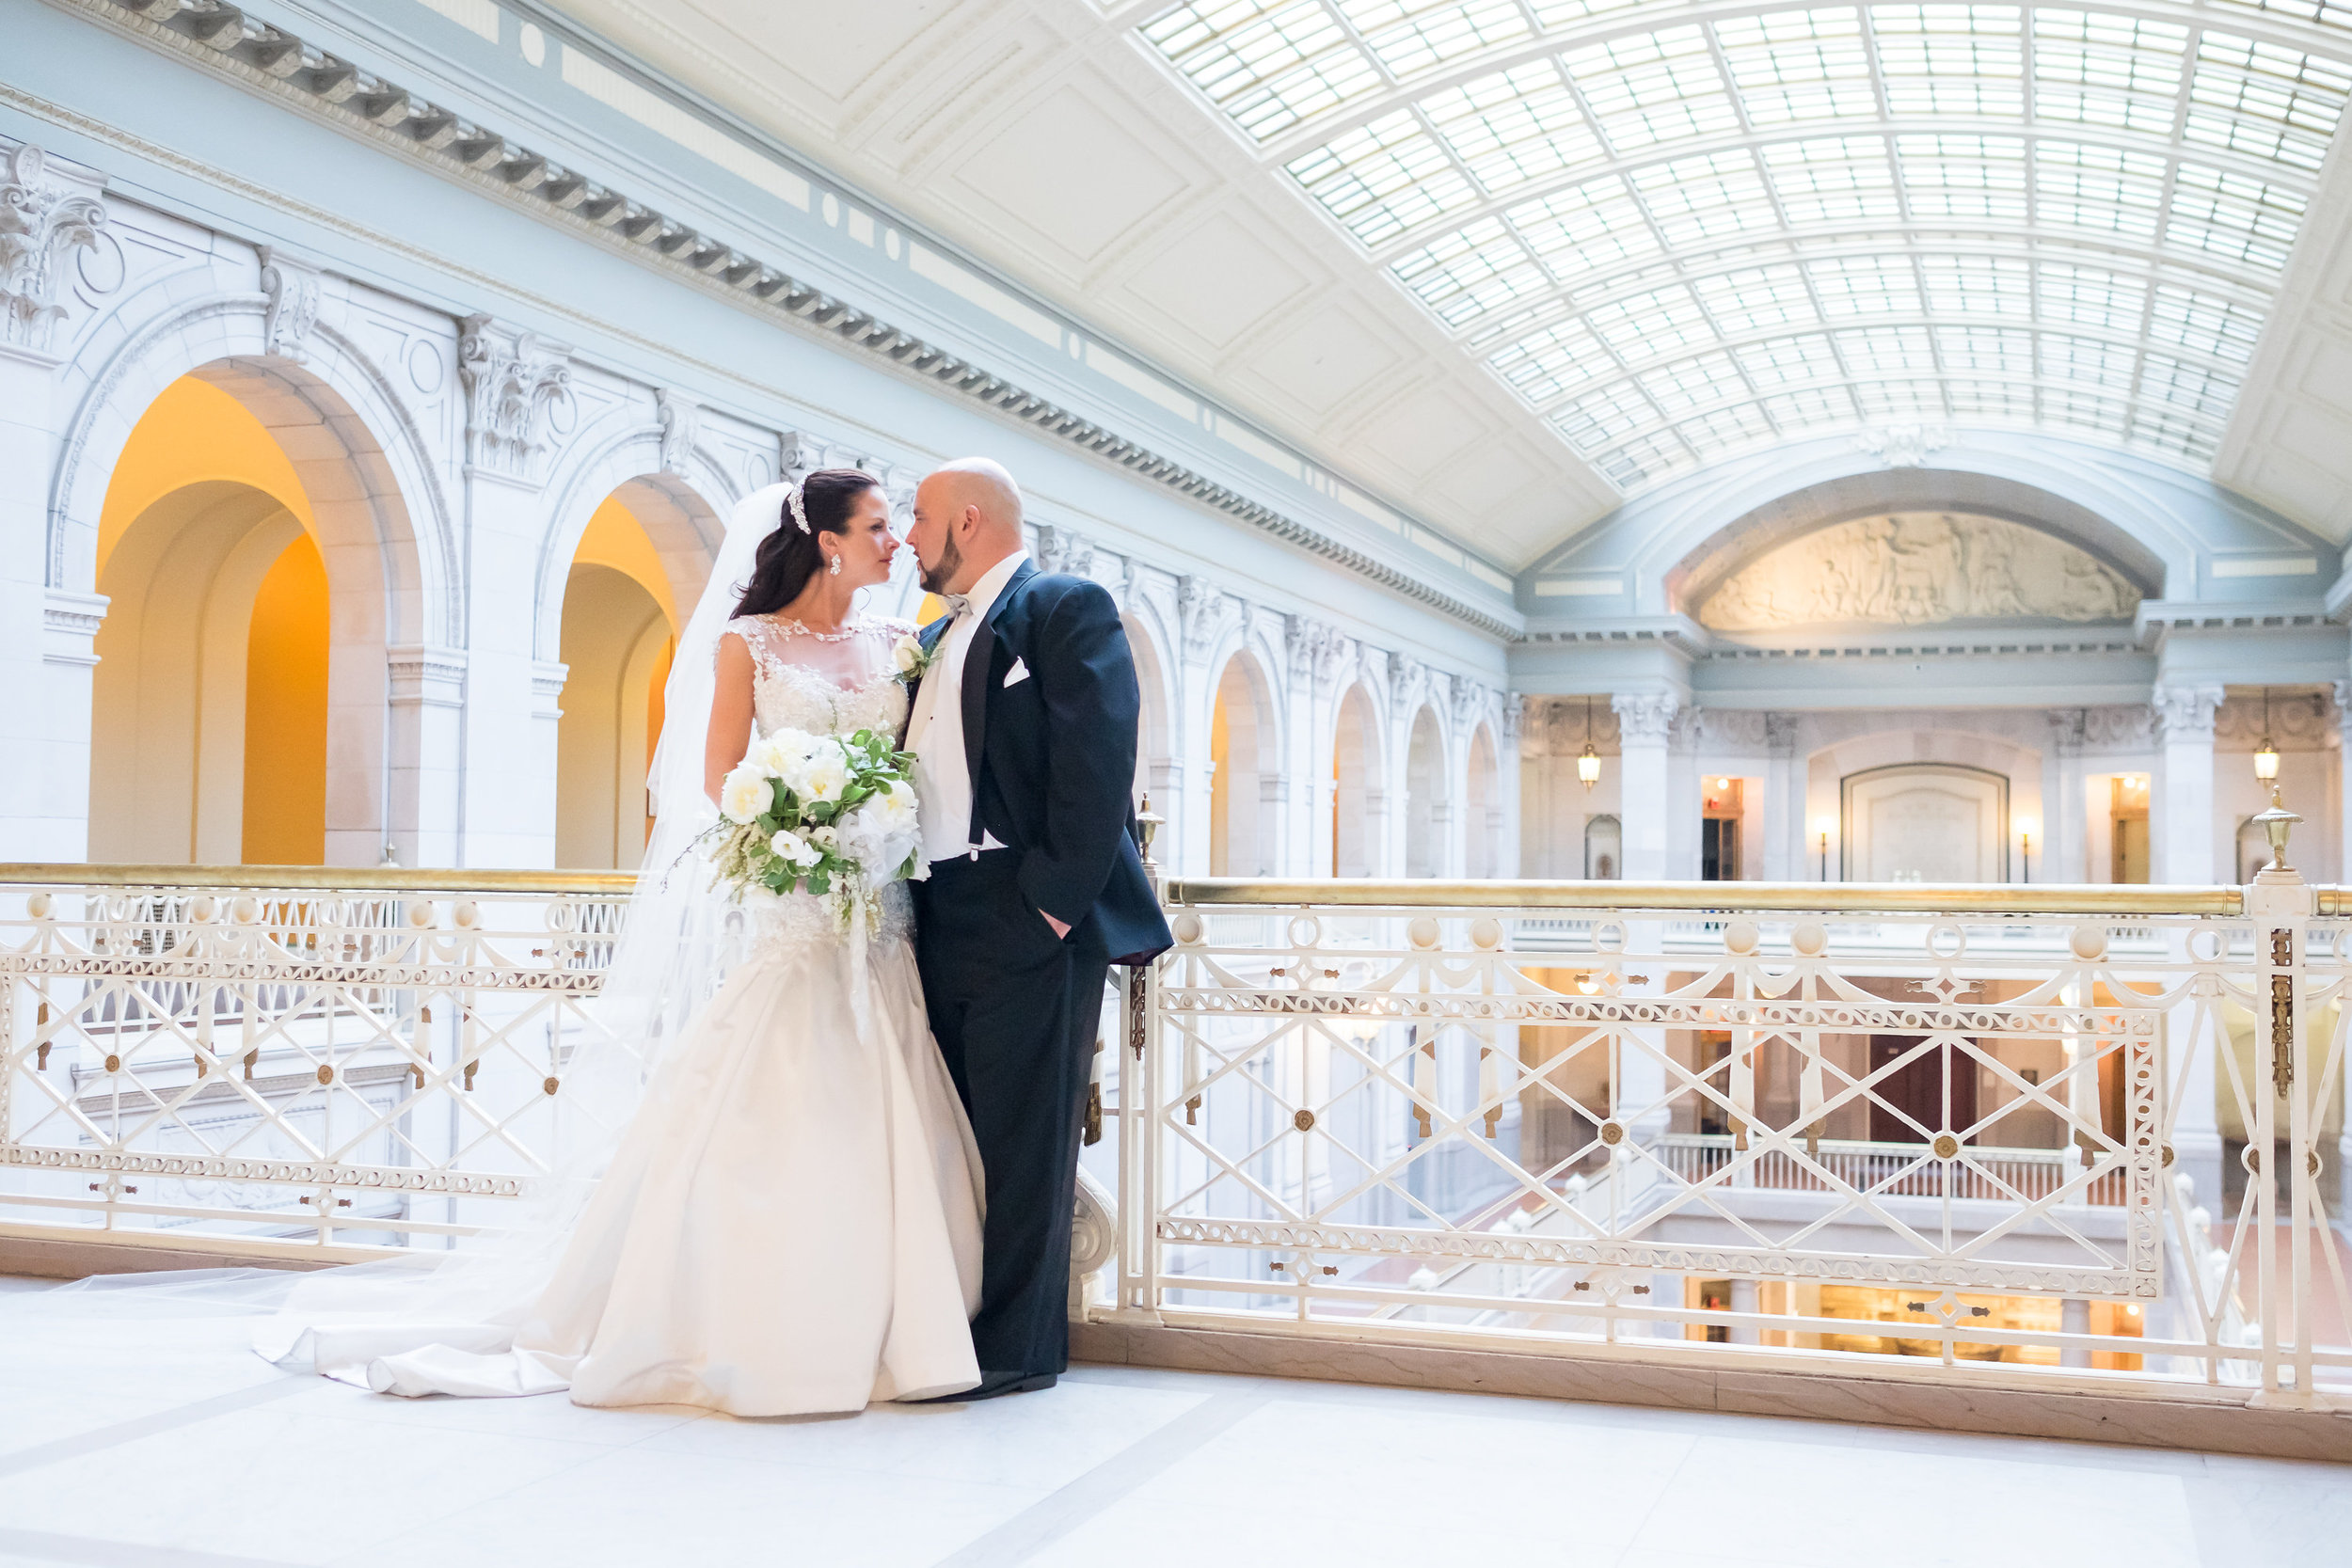 EMILIE & TORRY - SOCIETY ROOM HARTFORD CT